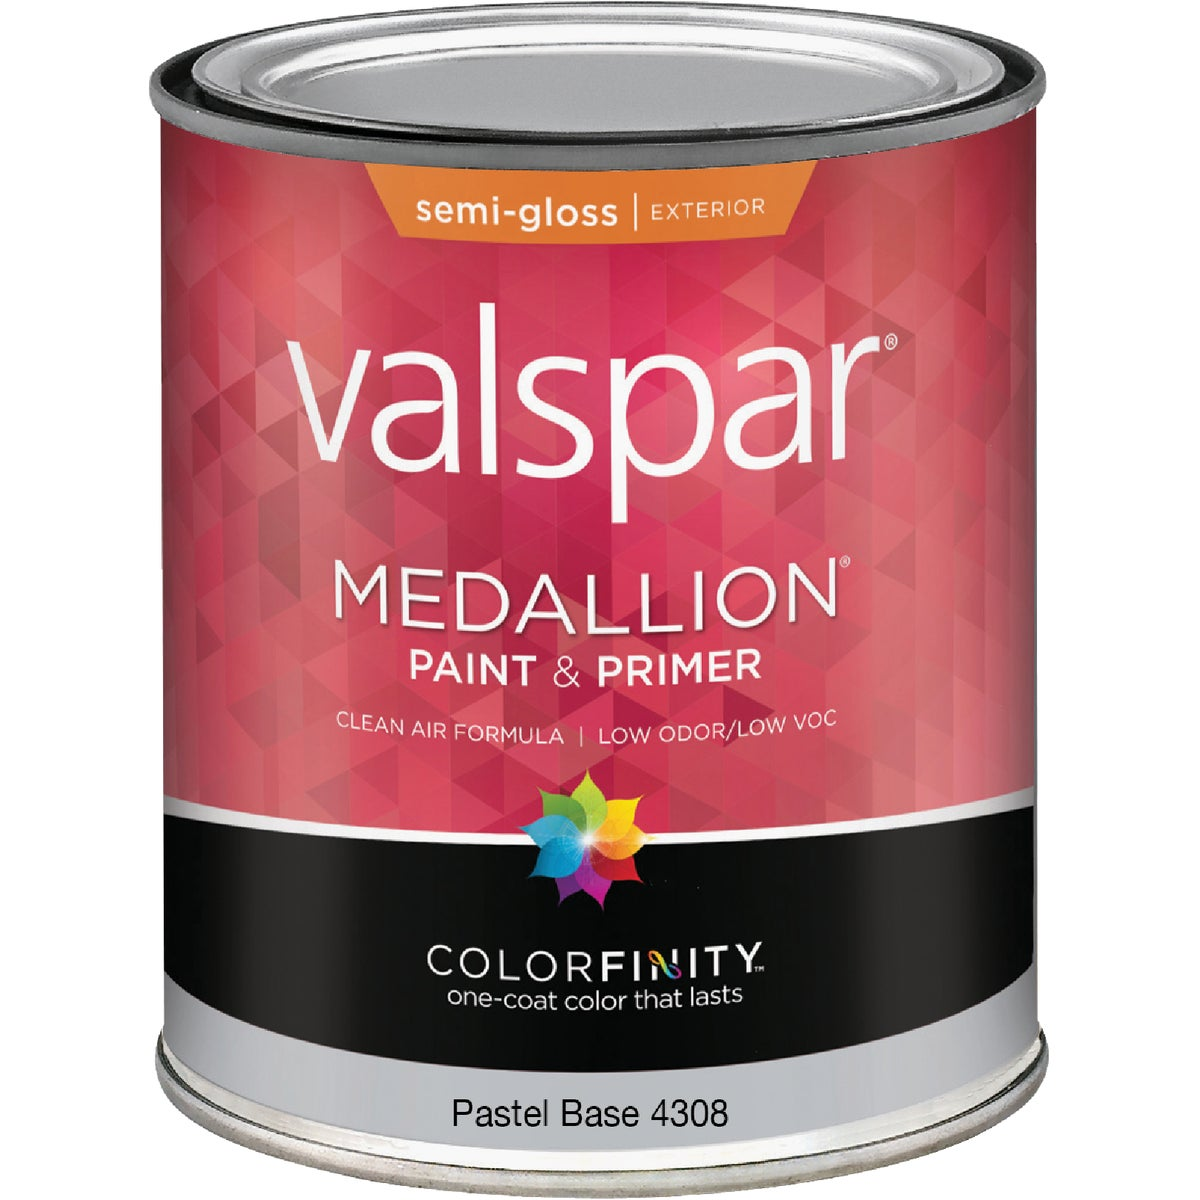 EXT S/G PASTEL BS PAINT - 027.0004308.005 by Valspar Corp